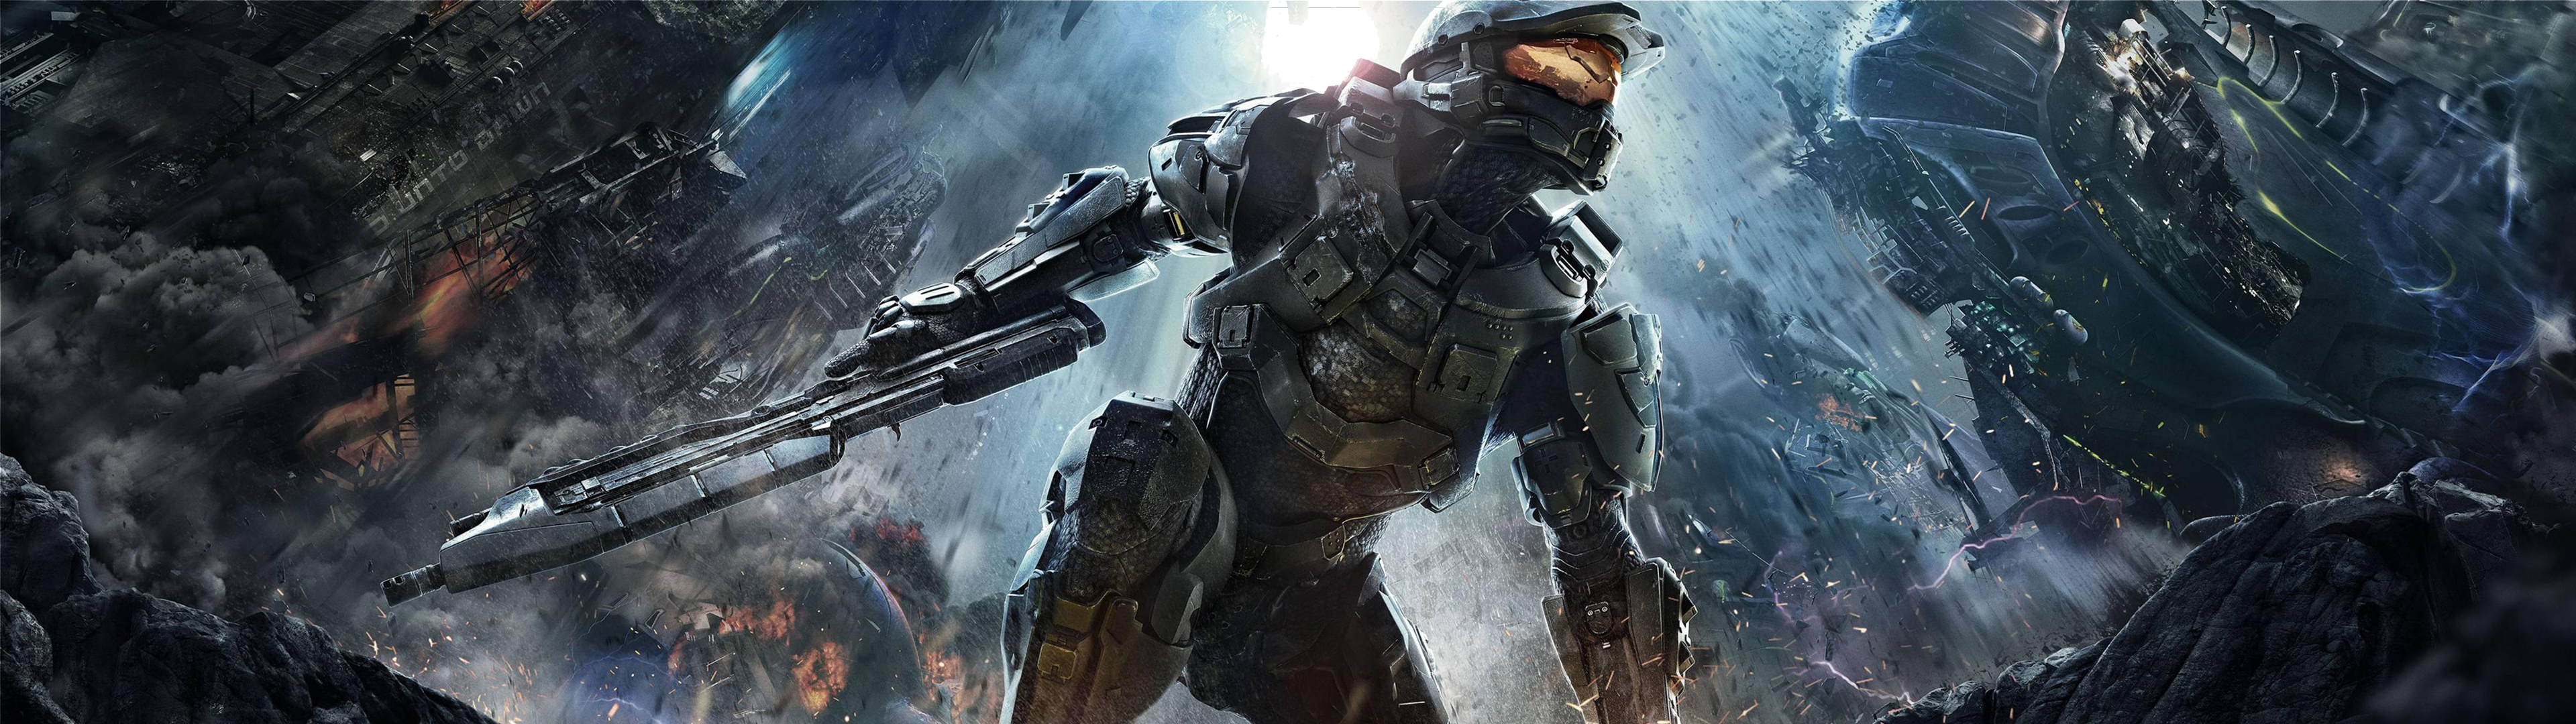 Master Chief - Halo by TomThaiTom